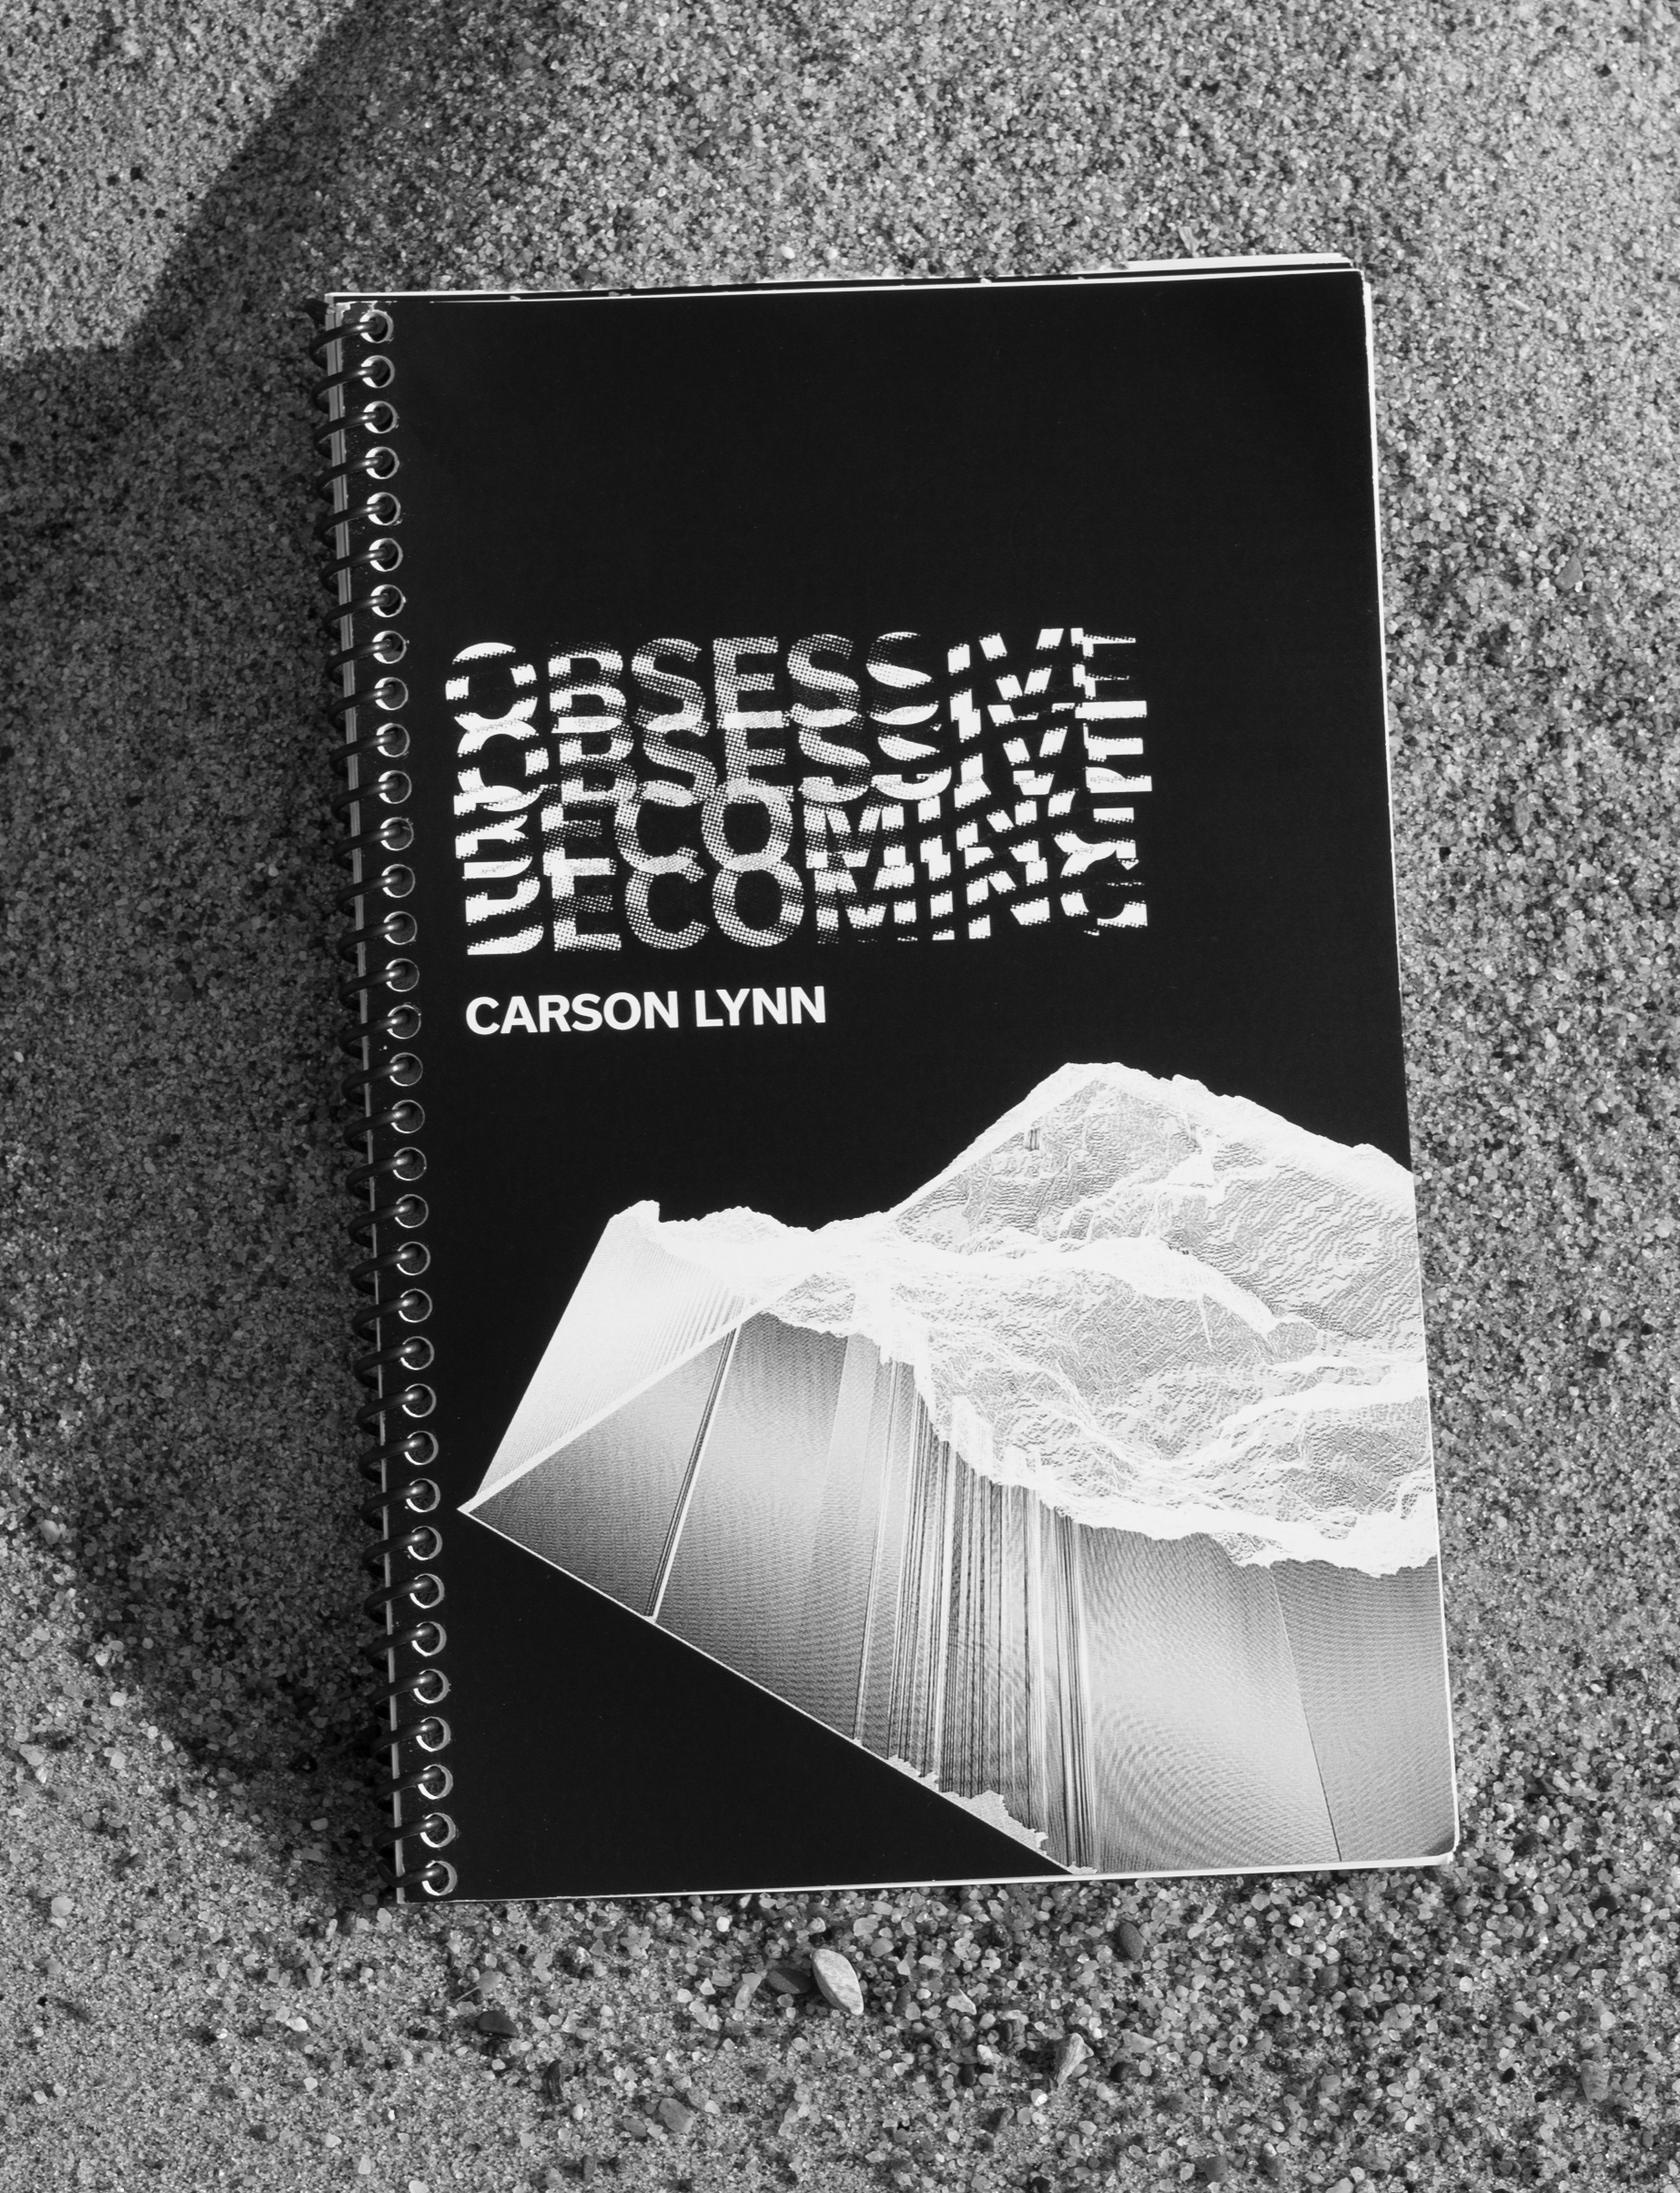 fund book, brought price Obsess - carsonlynn | ello